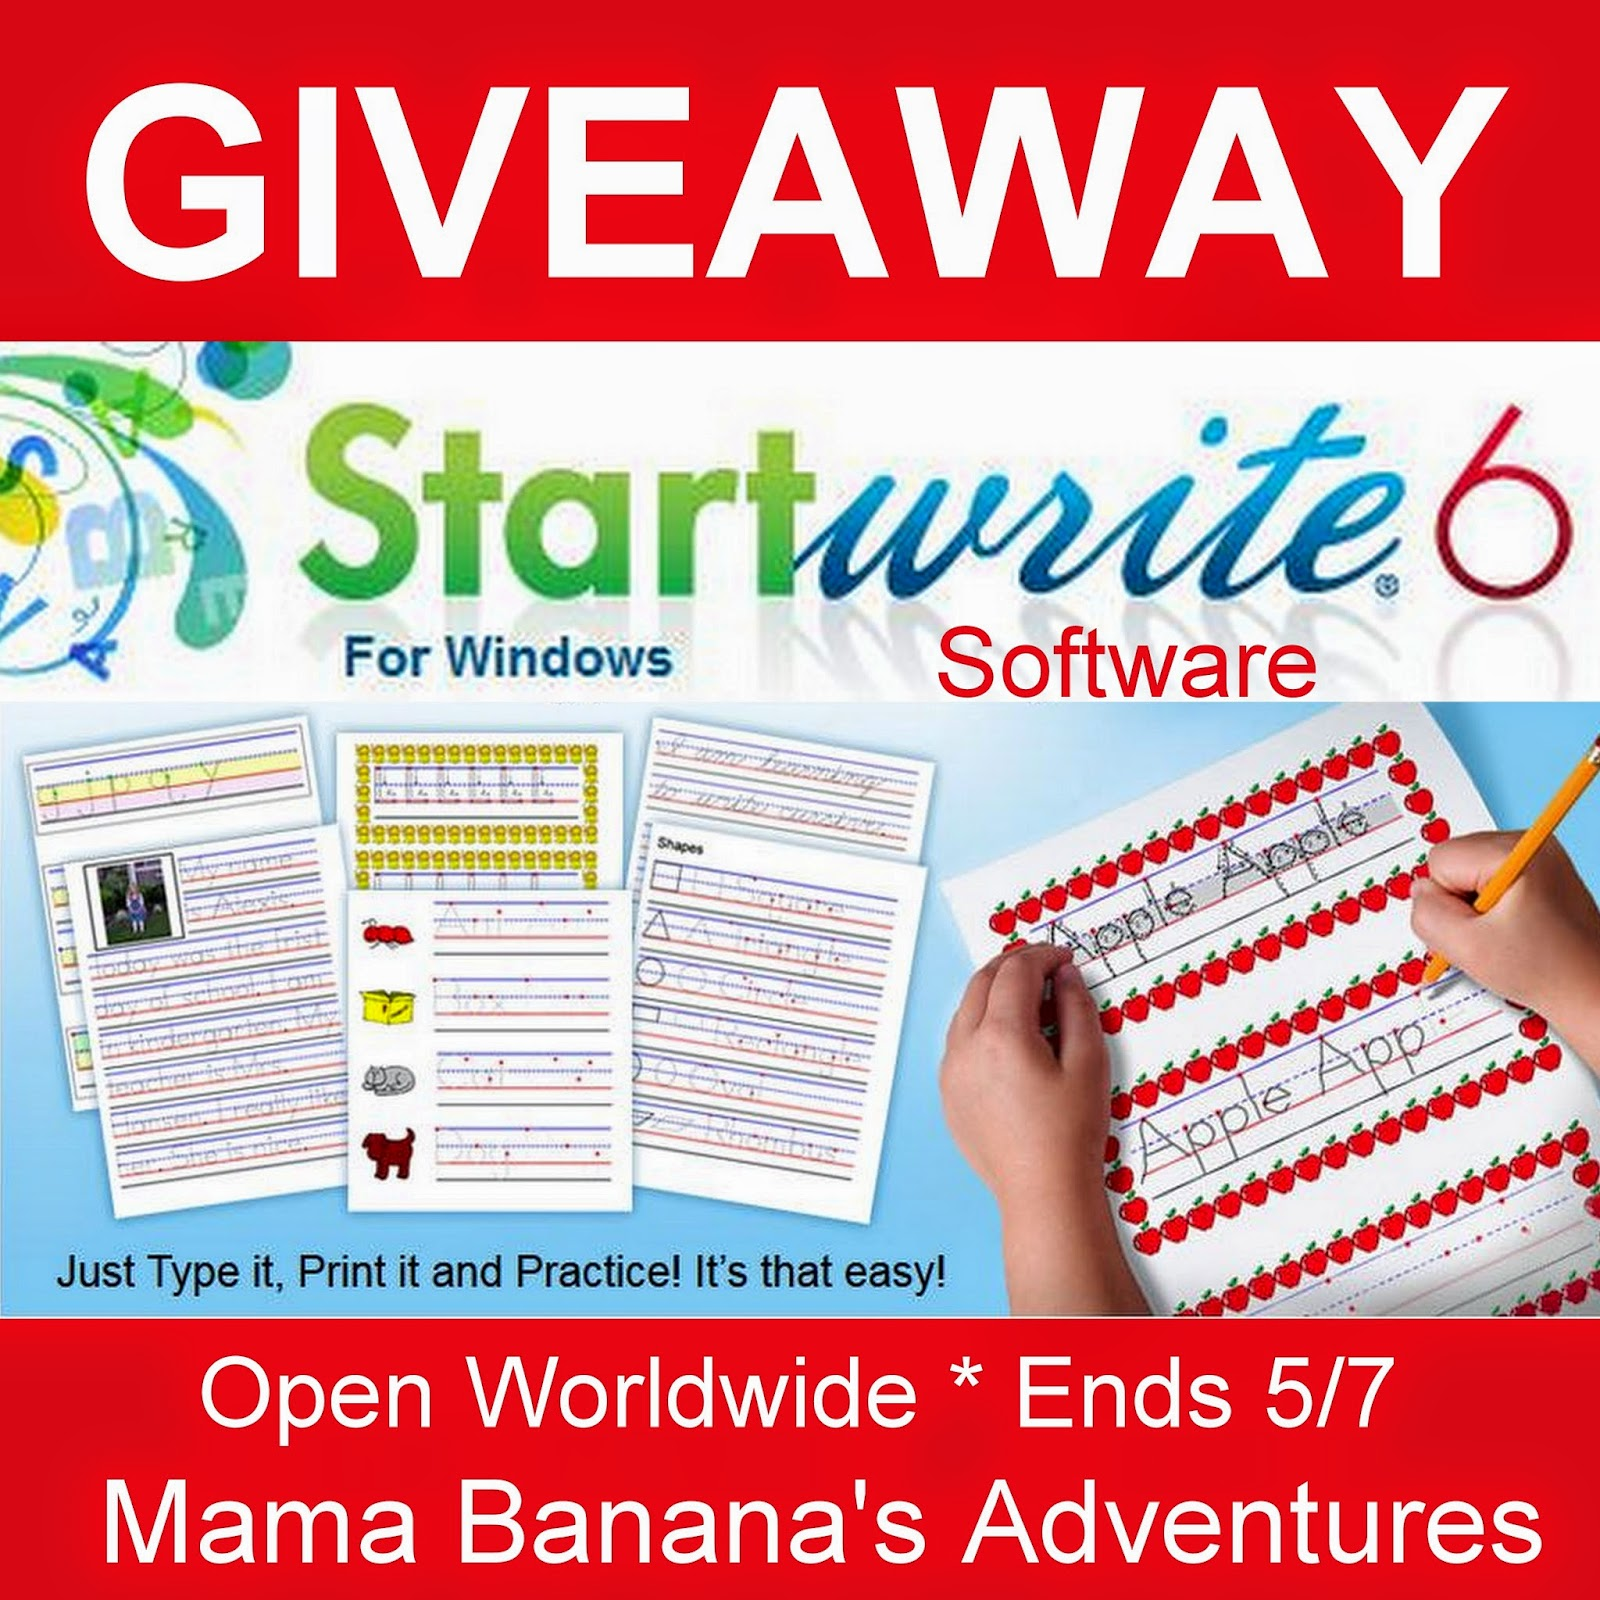 Enter the Startwrite Giveaway. Open WW. Ends 5/7